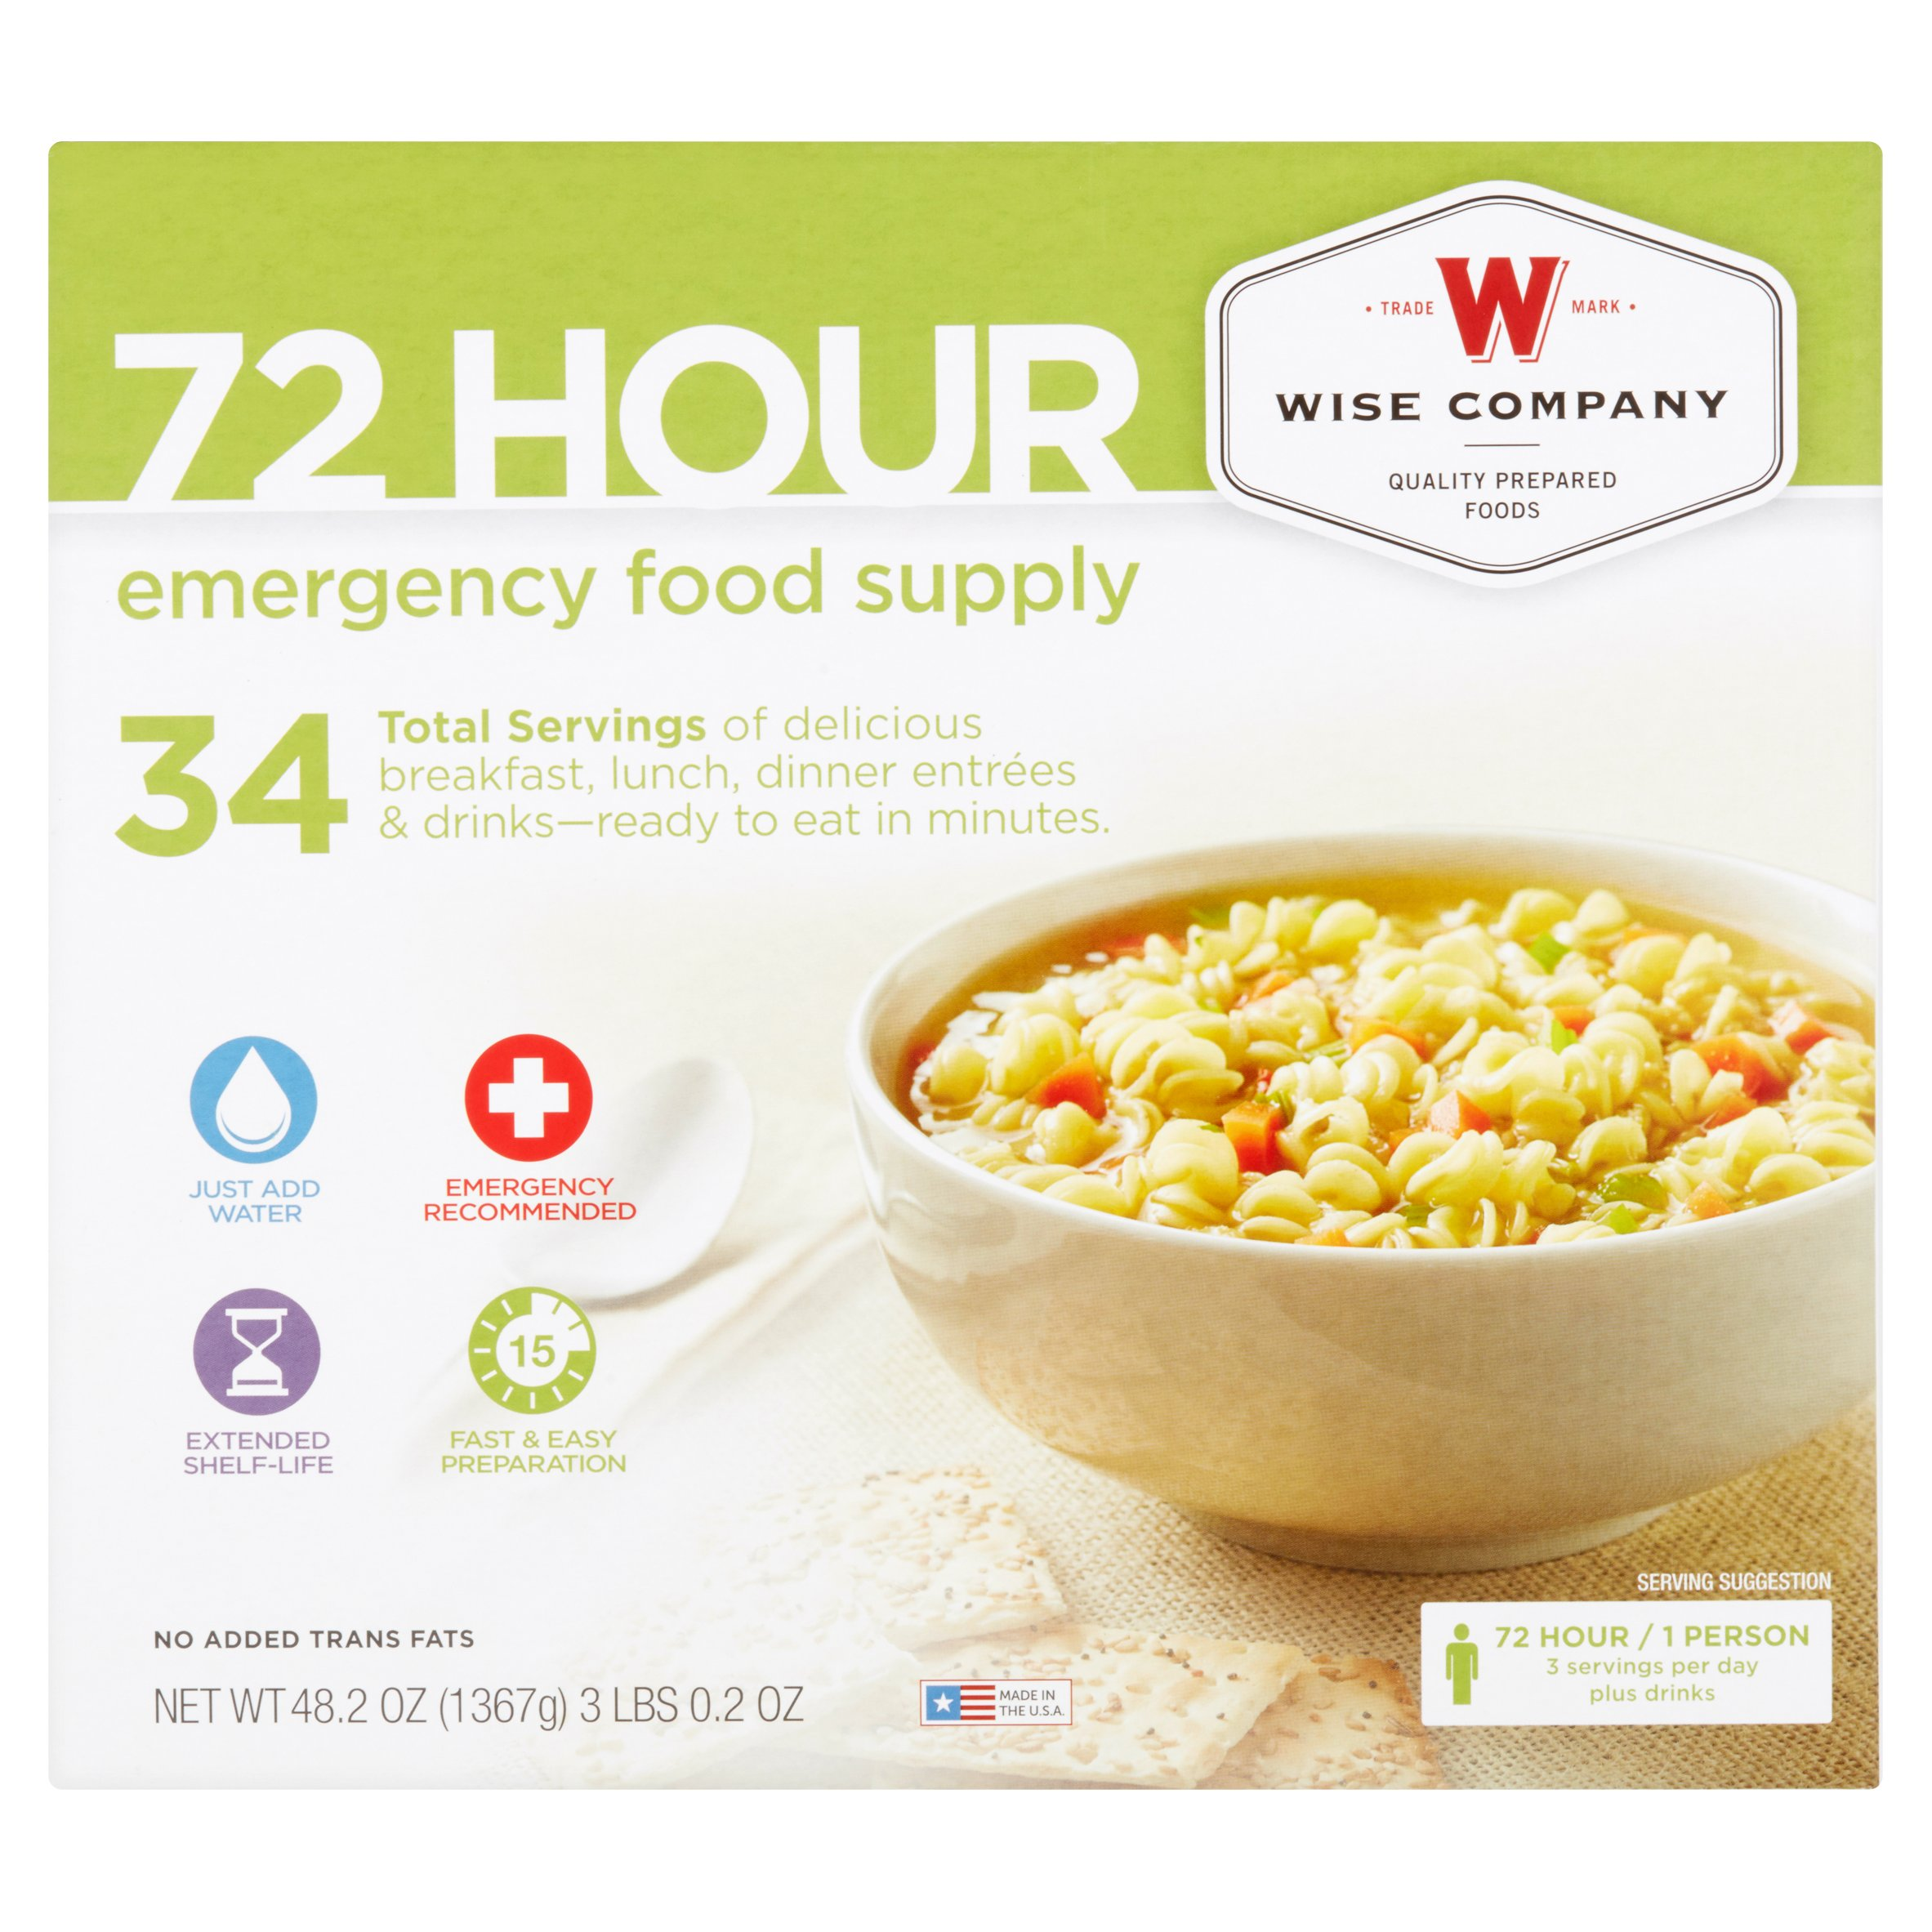 Wise Company 72 Hour Emergency Food Supply, 48.2 oz by Wise Company